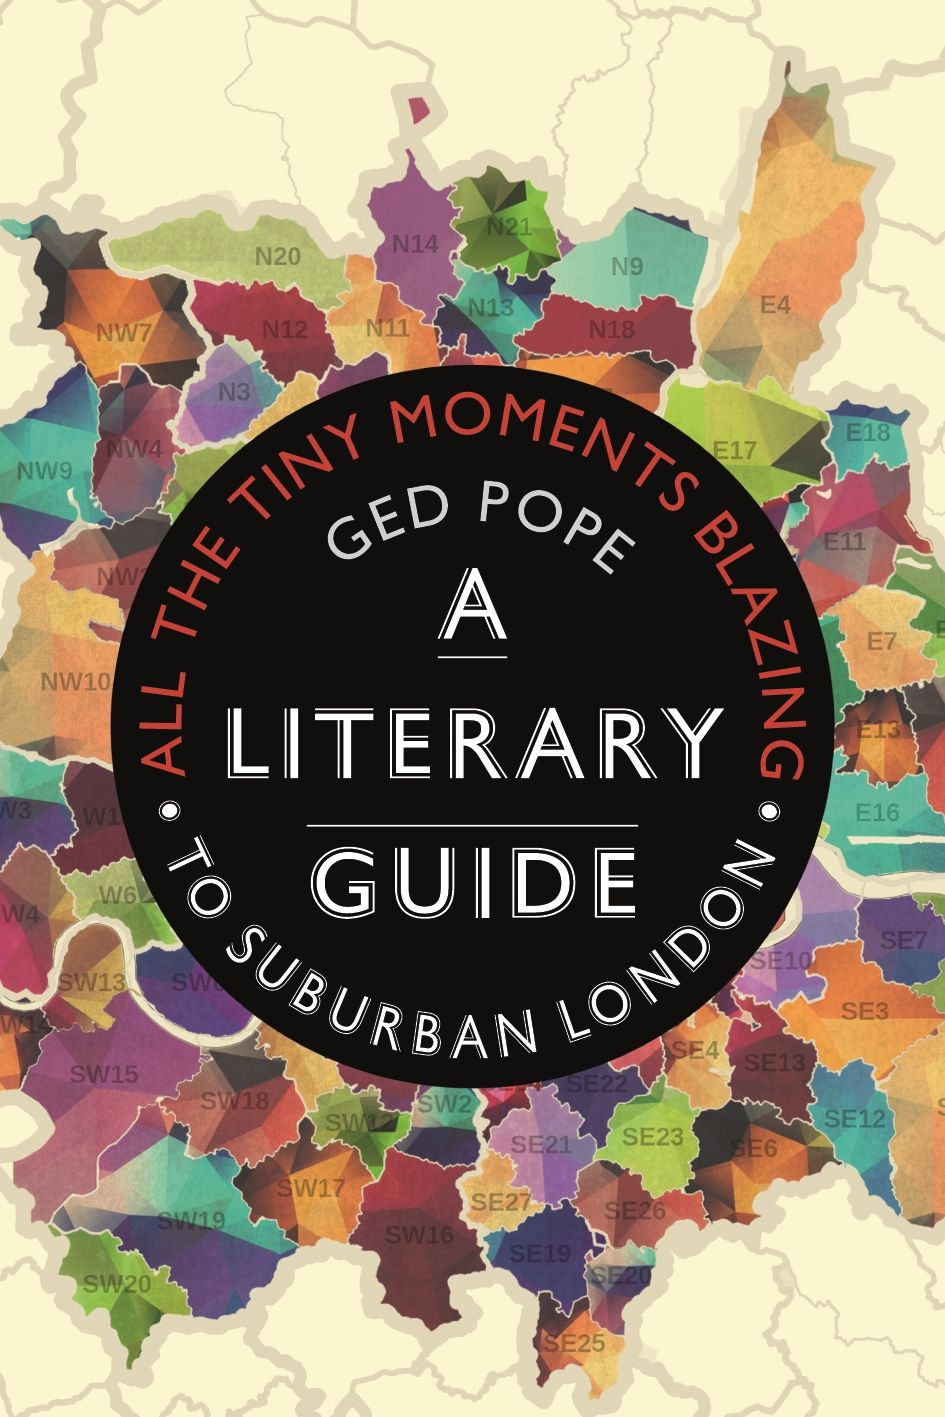 All the Tiny Moments Blazing: A Literary Guide to Suburban London